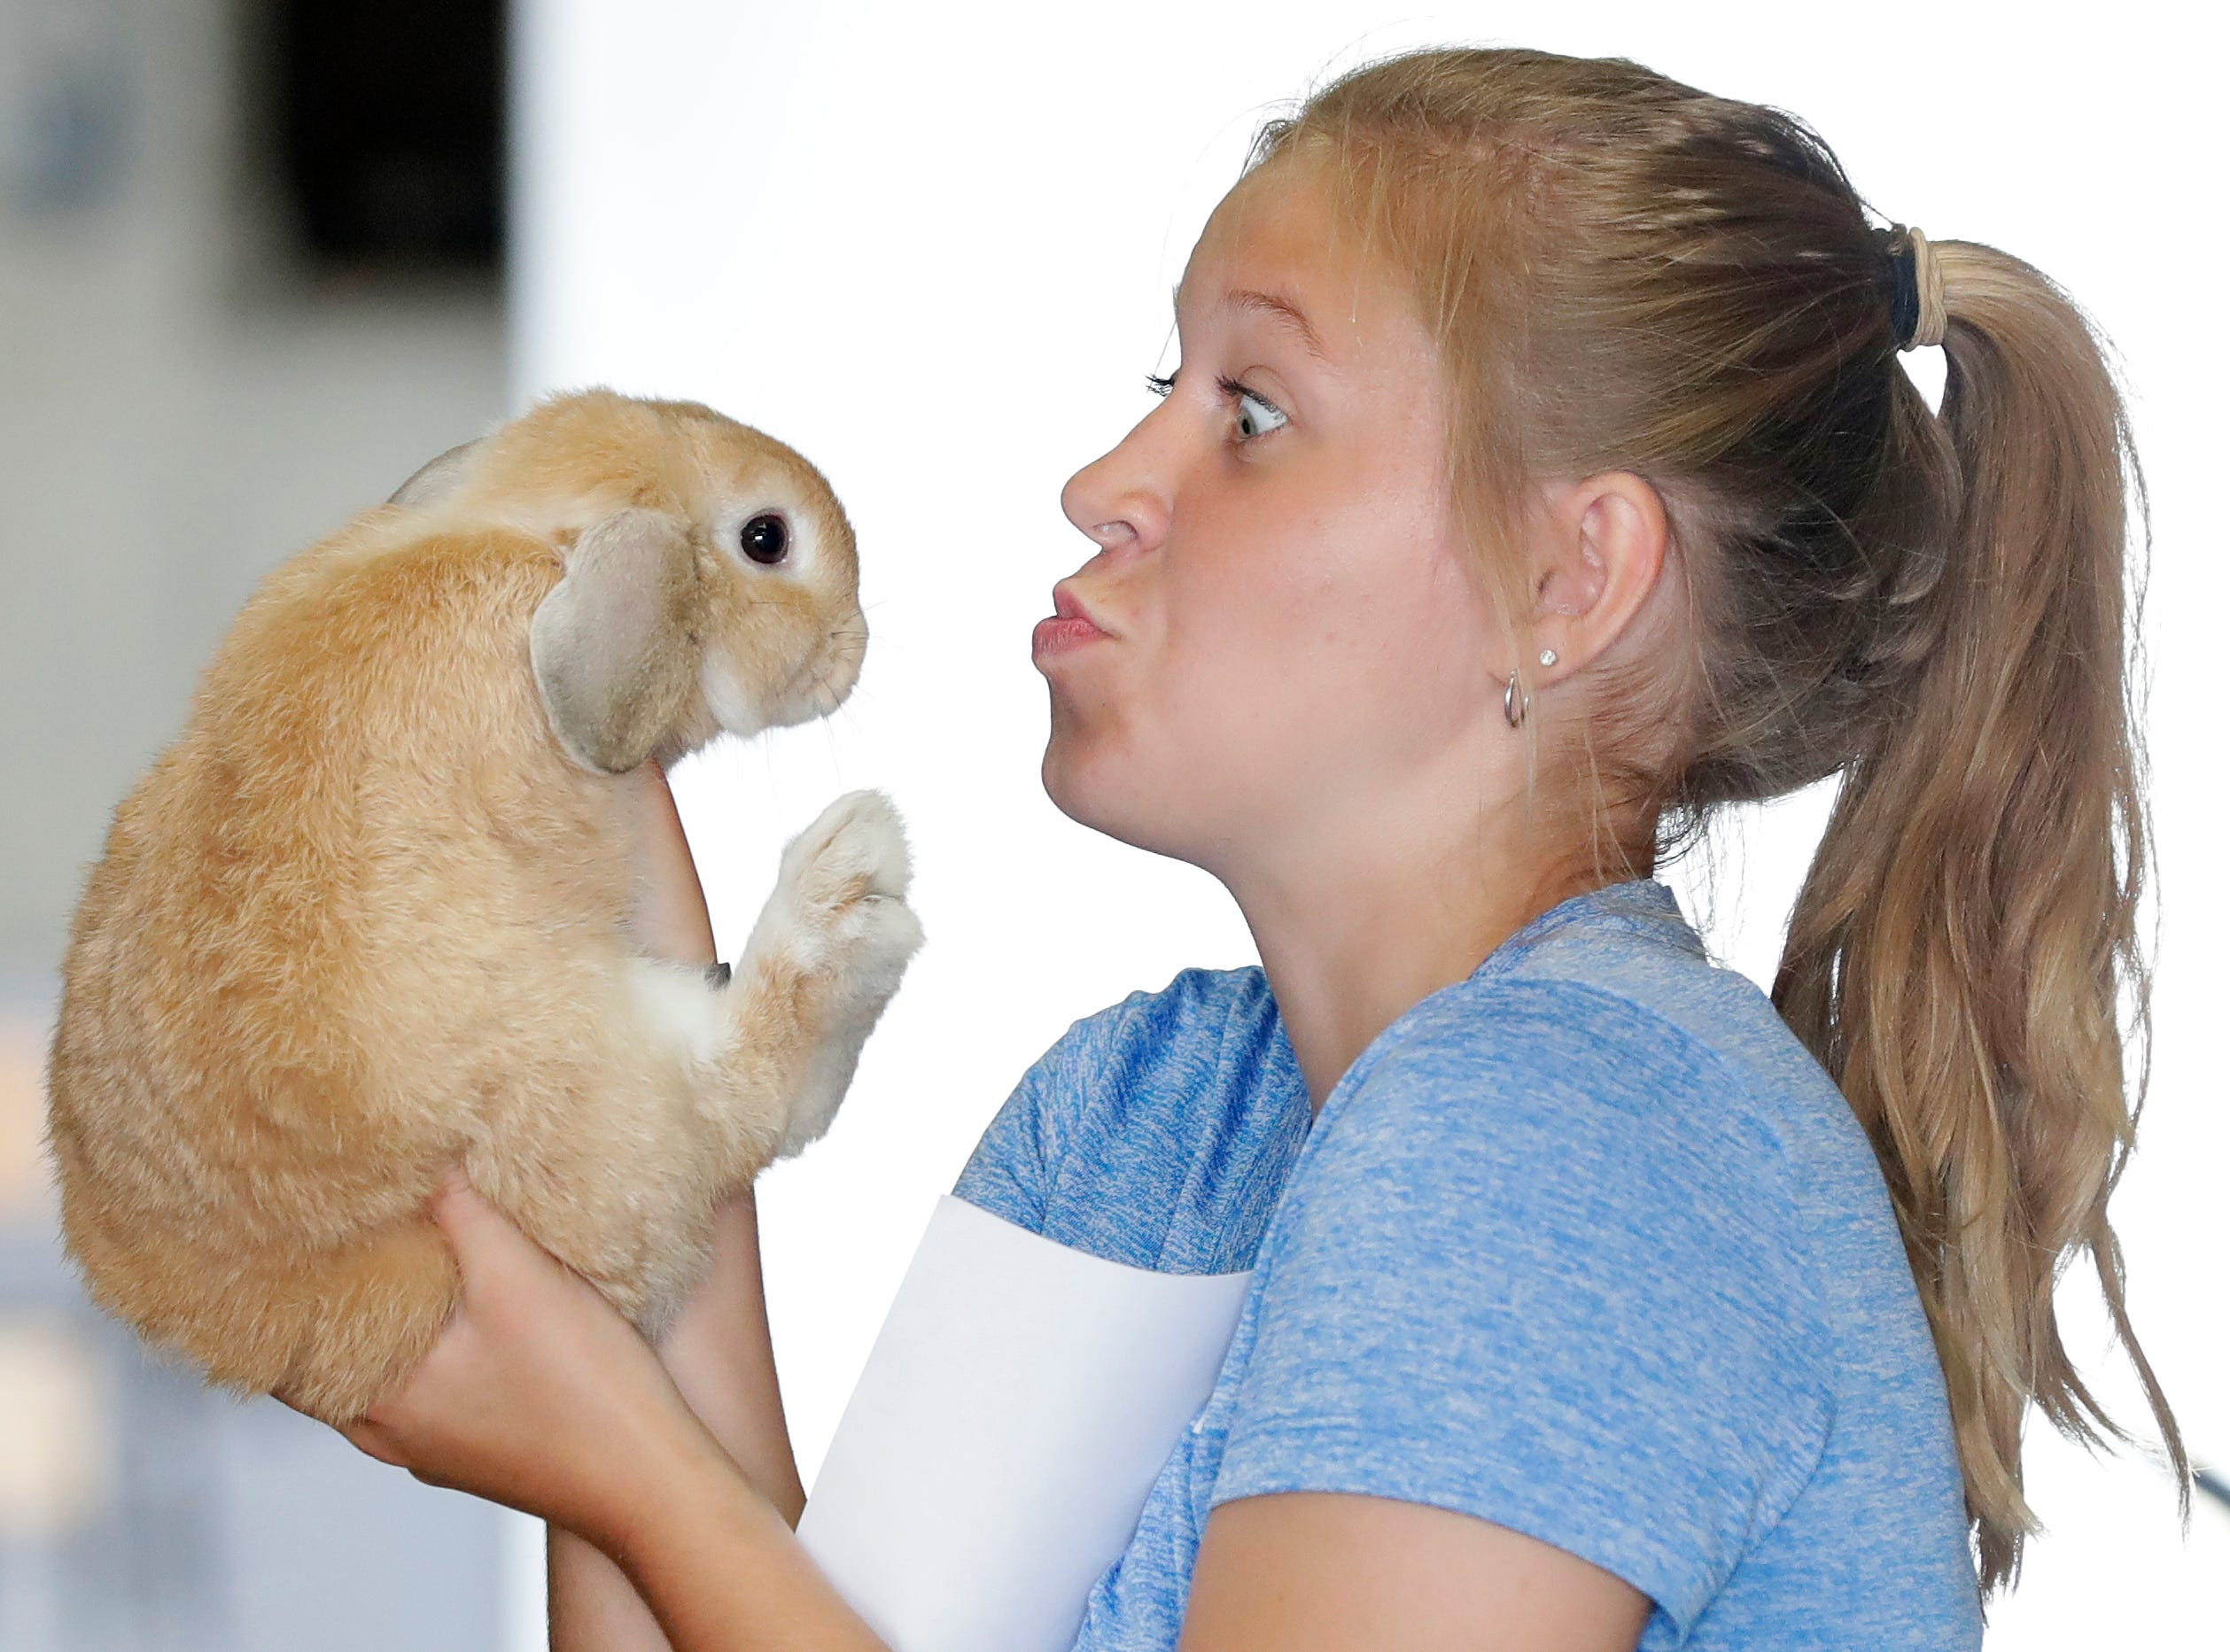 Paige Vanderveren makes faces at her rabbit on the opening day of the Brown County Fair on Wednesday, August 15, 2018 in De Pere, Wis.